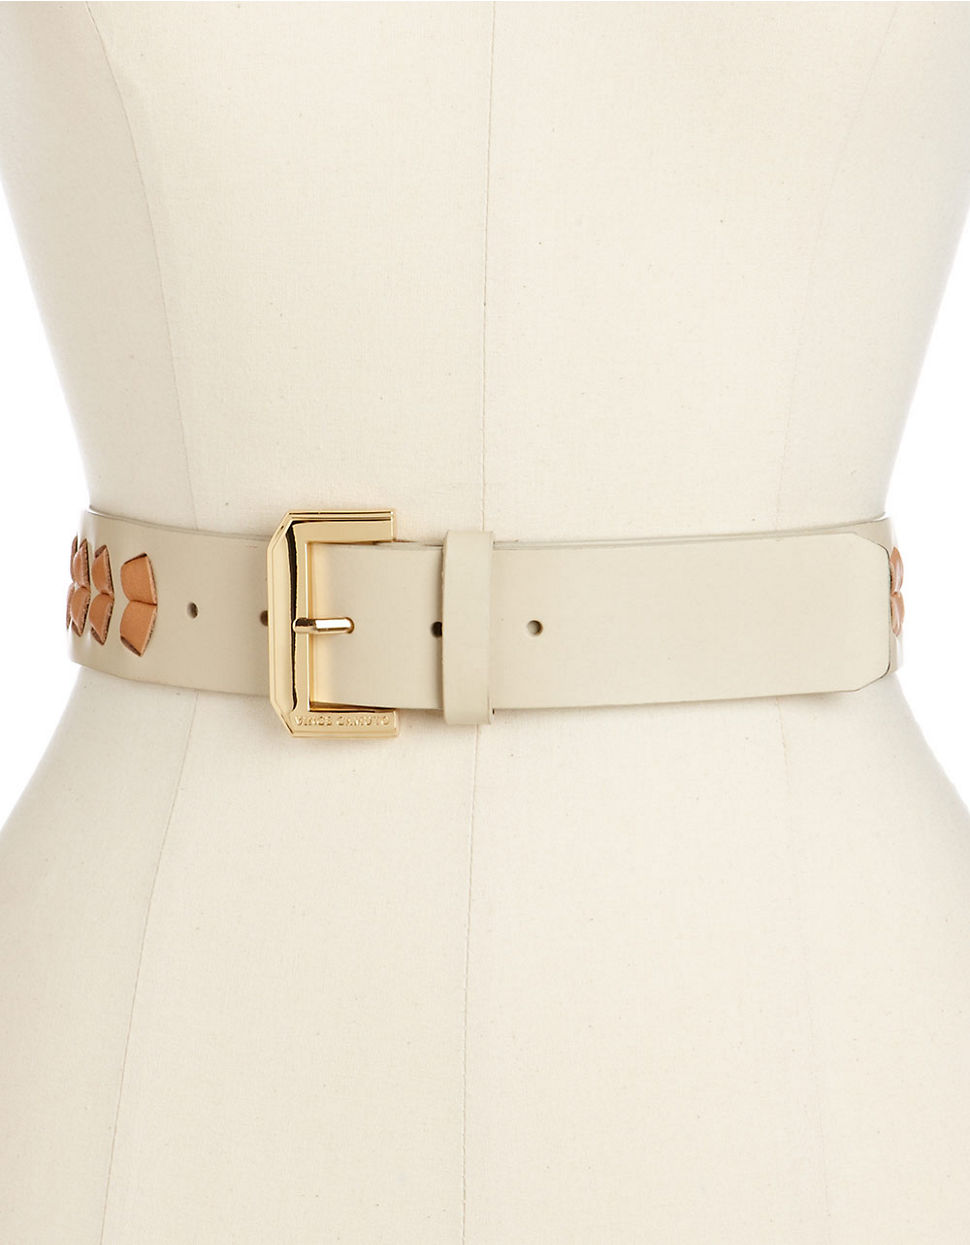 Vince camuto Weekend Casual Belt with Polished Gold Logo Buckle natural Small